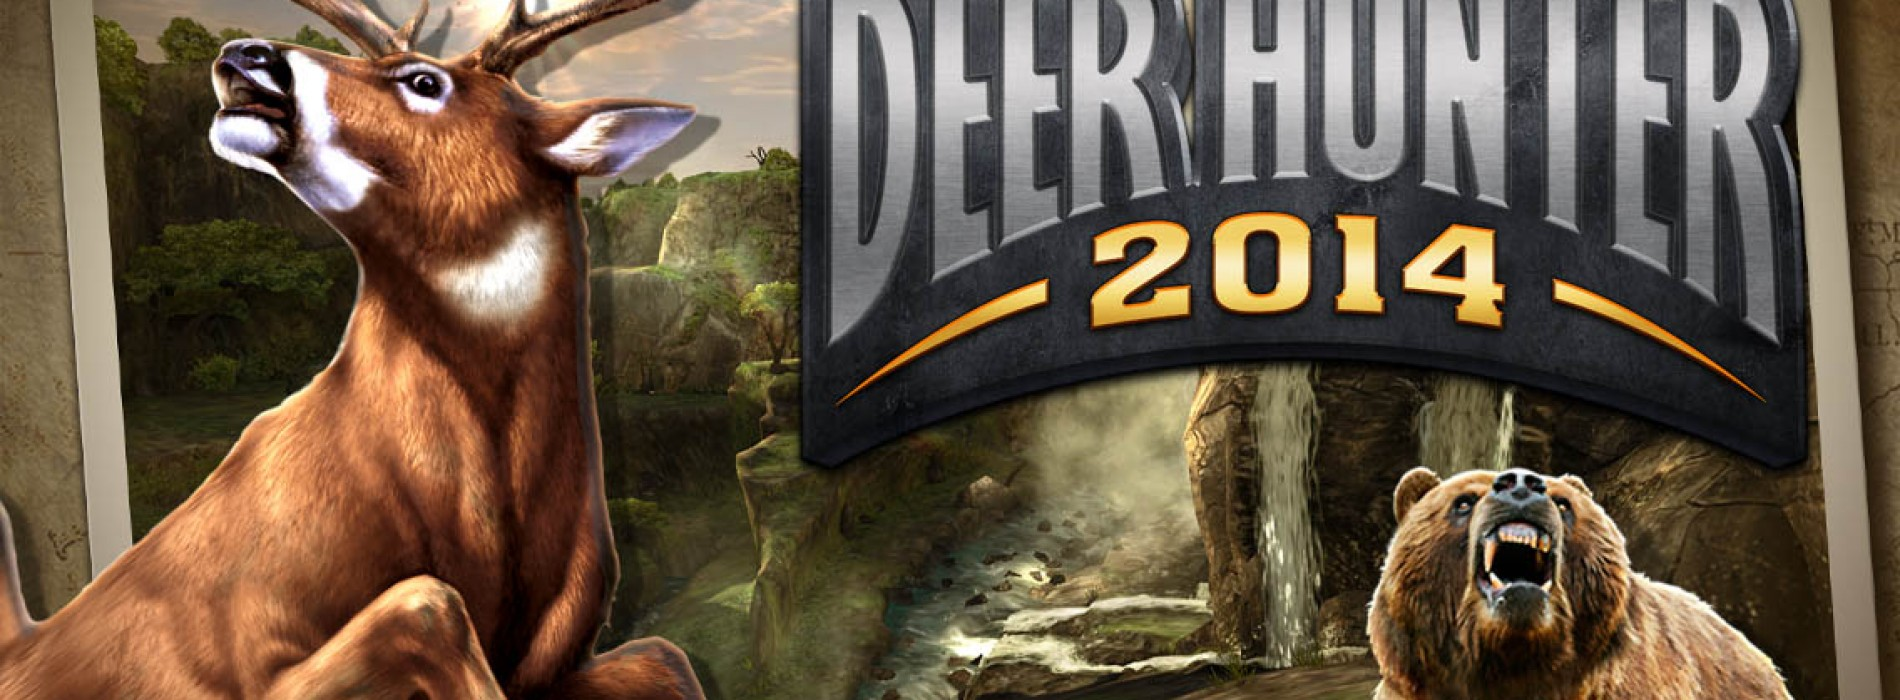 Deer Hunter 2014 coming soon to Android